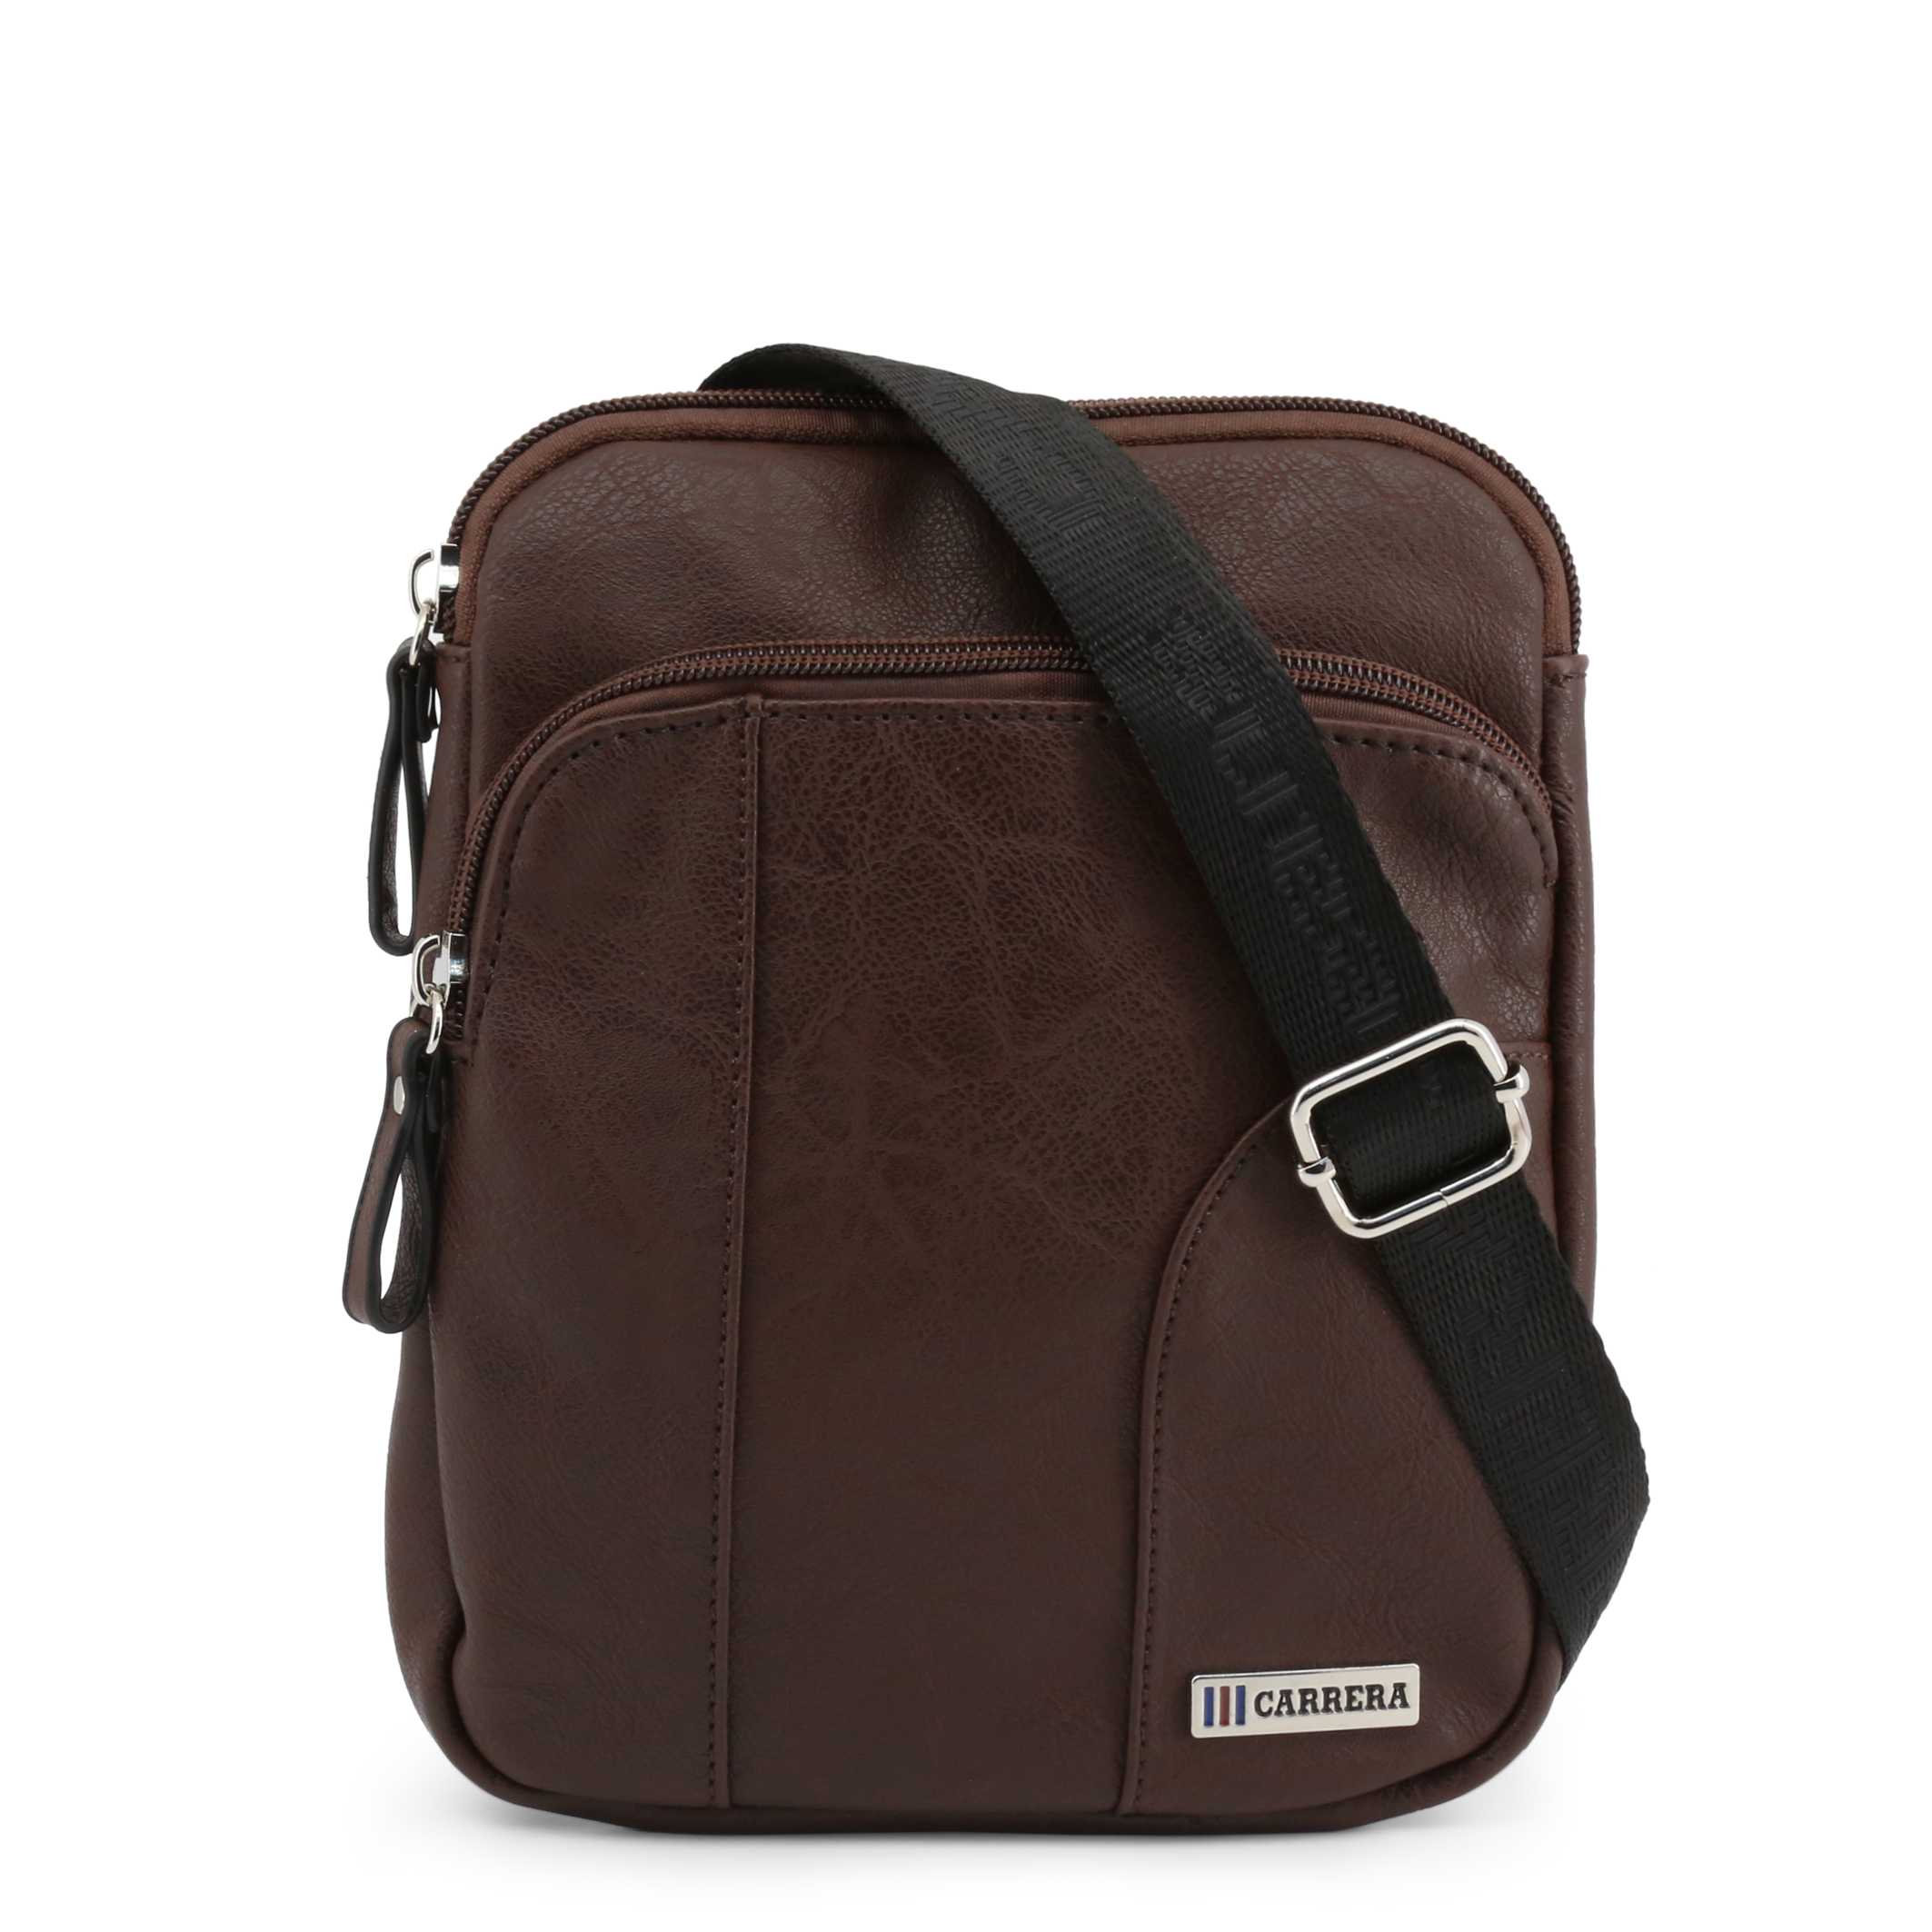 Carrera Jeans NEW-HOLD_CB1502_DK BROWN